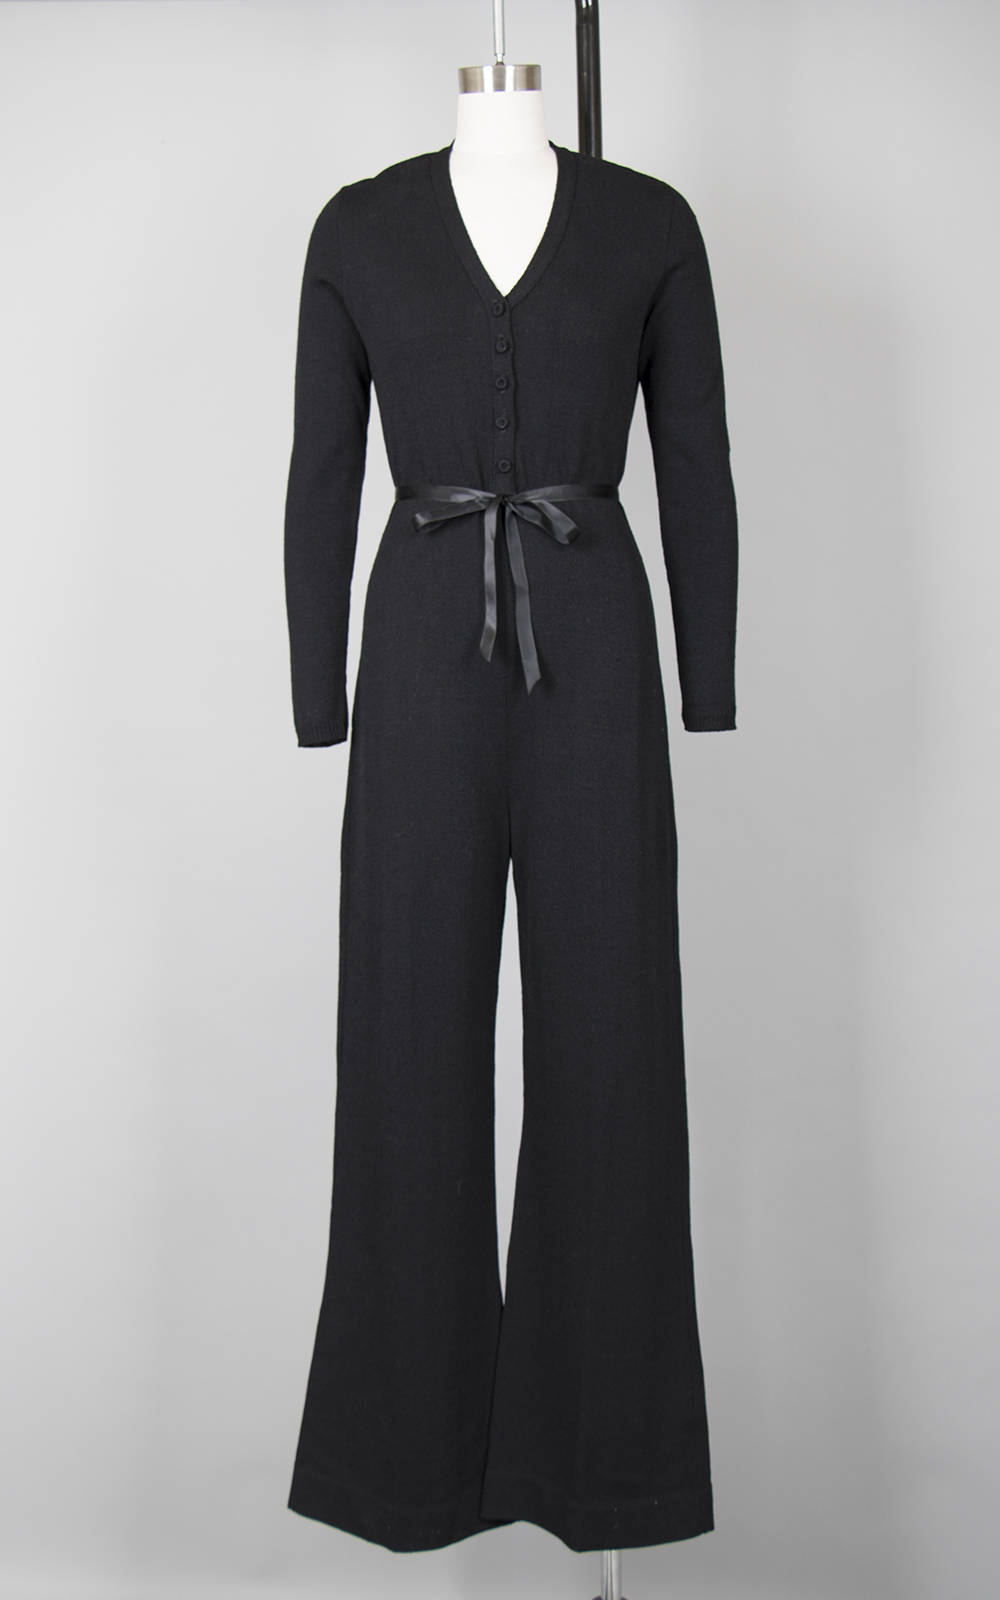 Vintage 1970s Jumpsuit | 70s Knit Black Wool Long Sleeve Button Up Wide Leg Jumpsuit (medium)